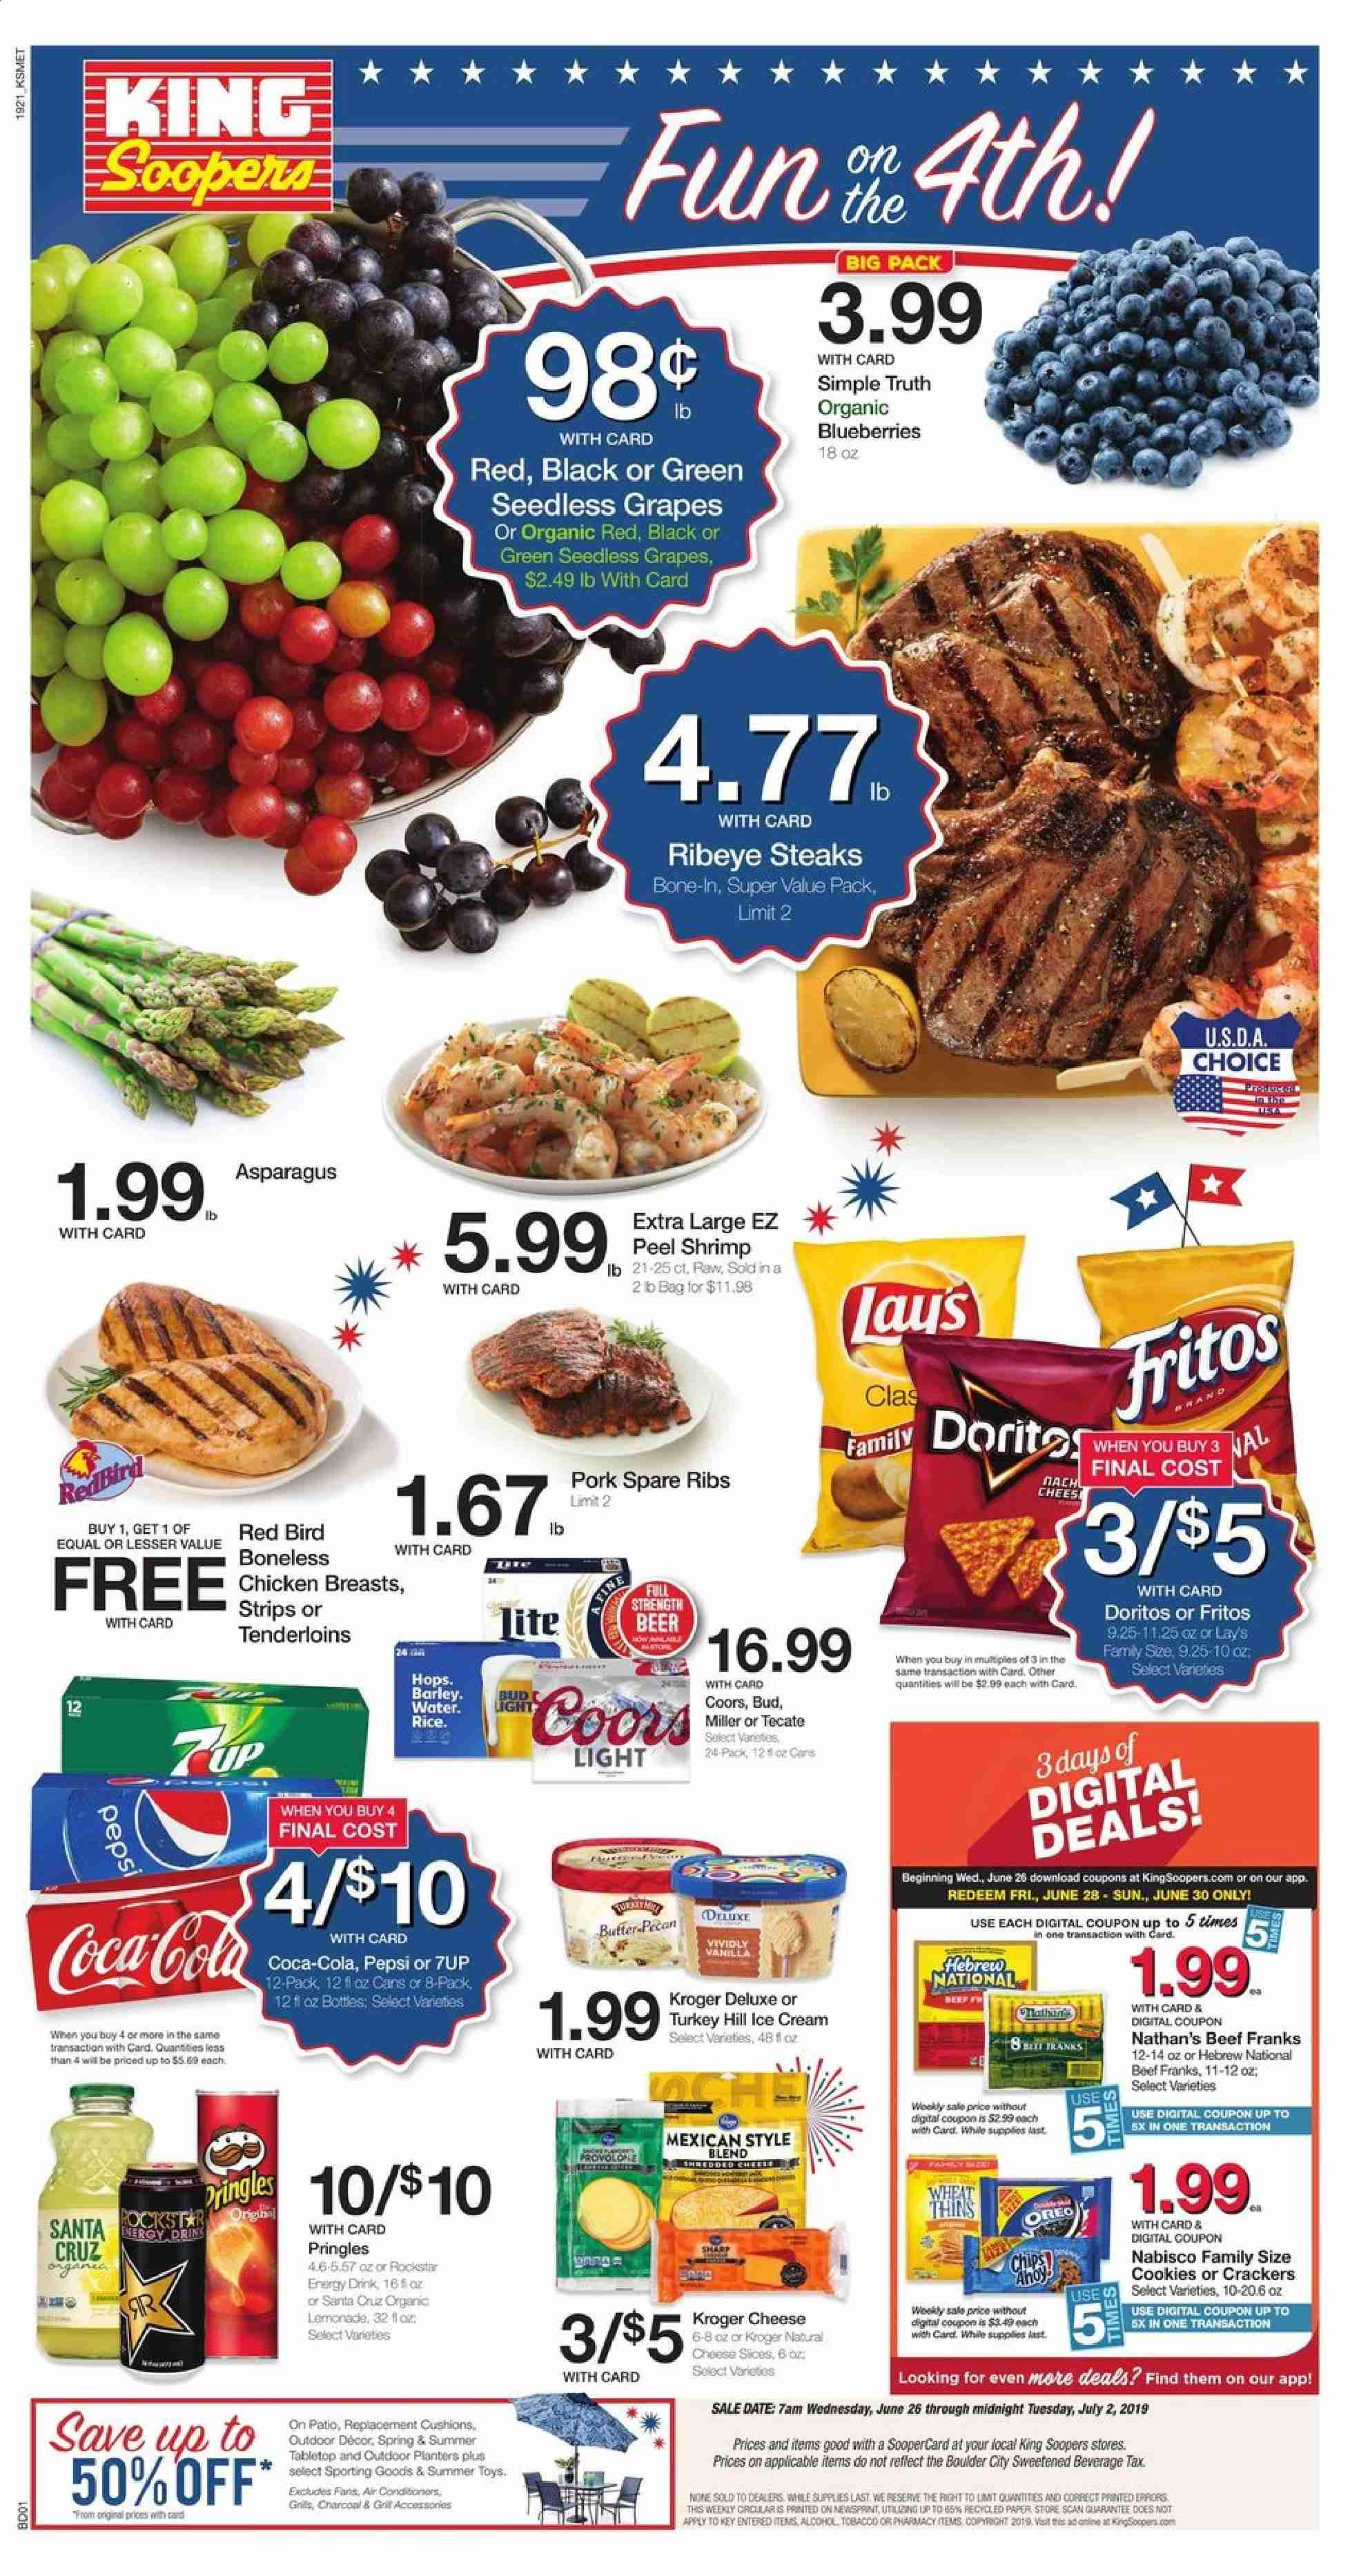 King Soopers Flyer  - 06.26.2019 - 07.02.2019. Page 1.